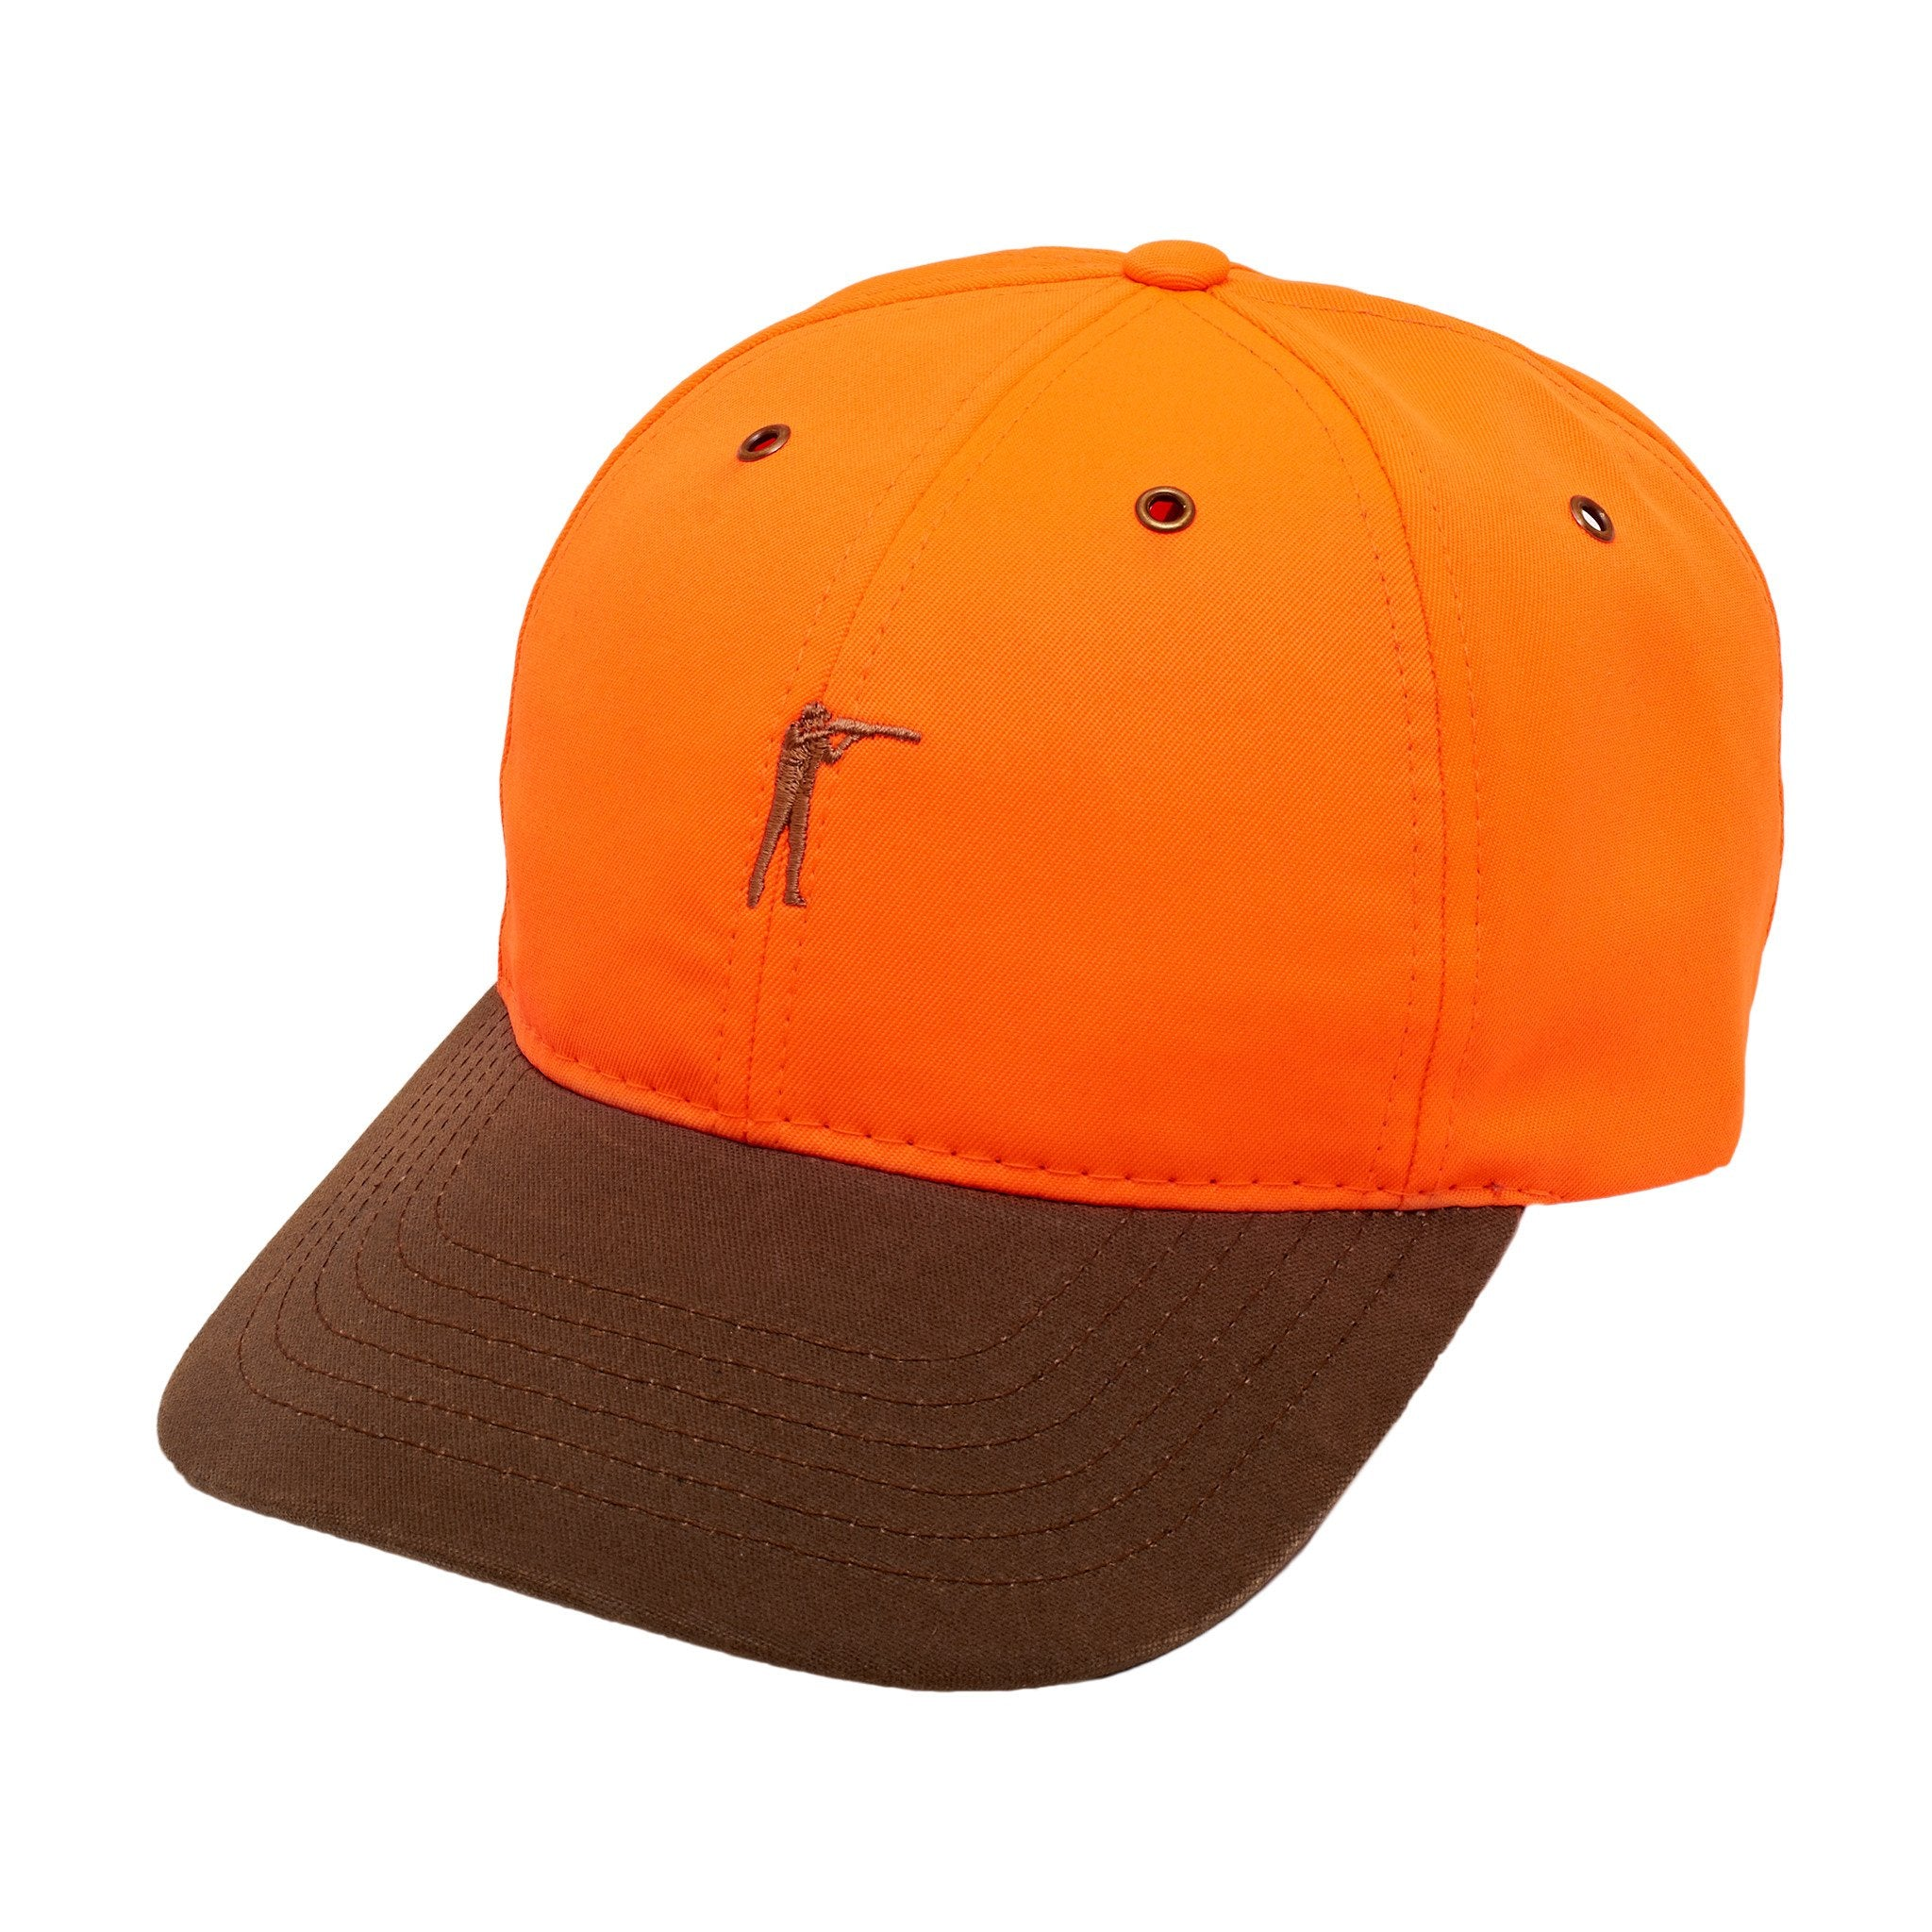 The Upland Hat